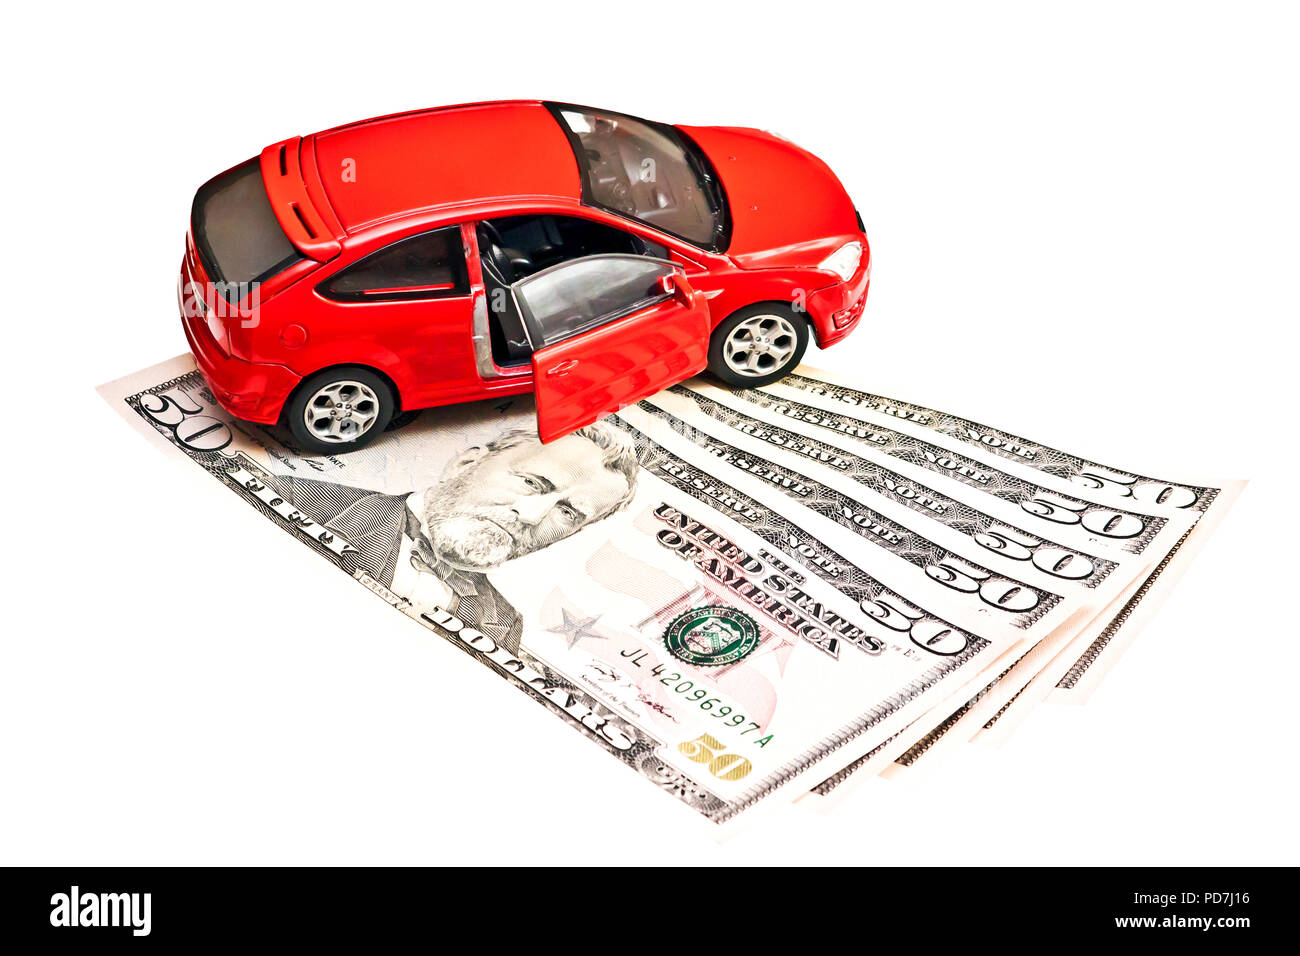 Car and money. Concept for buying, renting, insurance, fuel, service and repair costs - Stock Image